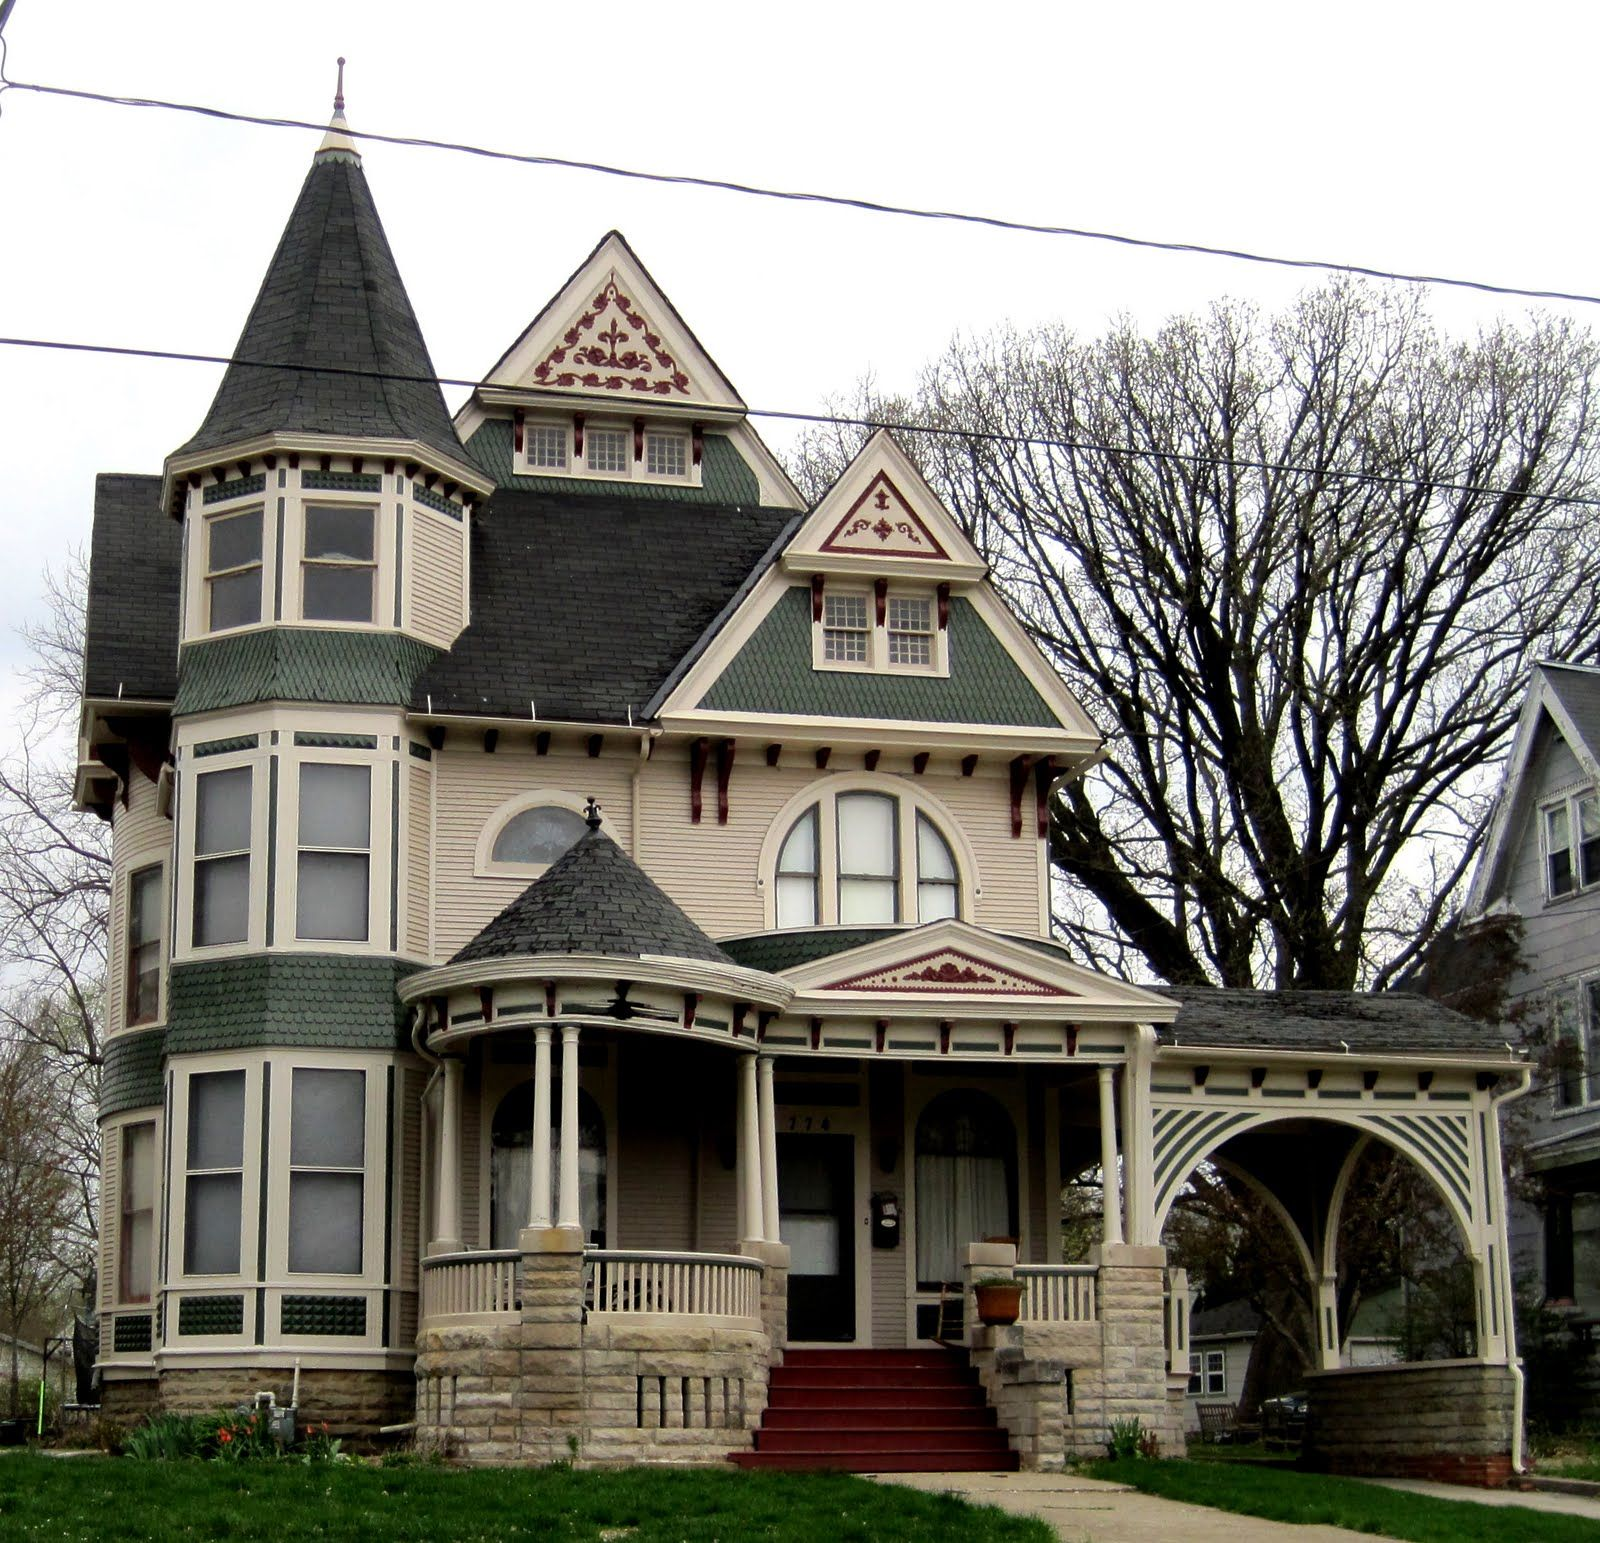 Excellent 17 Best Images About Victorian Houses On Pinterest Mansions Largest Home Design Picture Inspirations Pitcheantrous